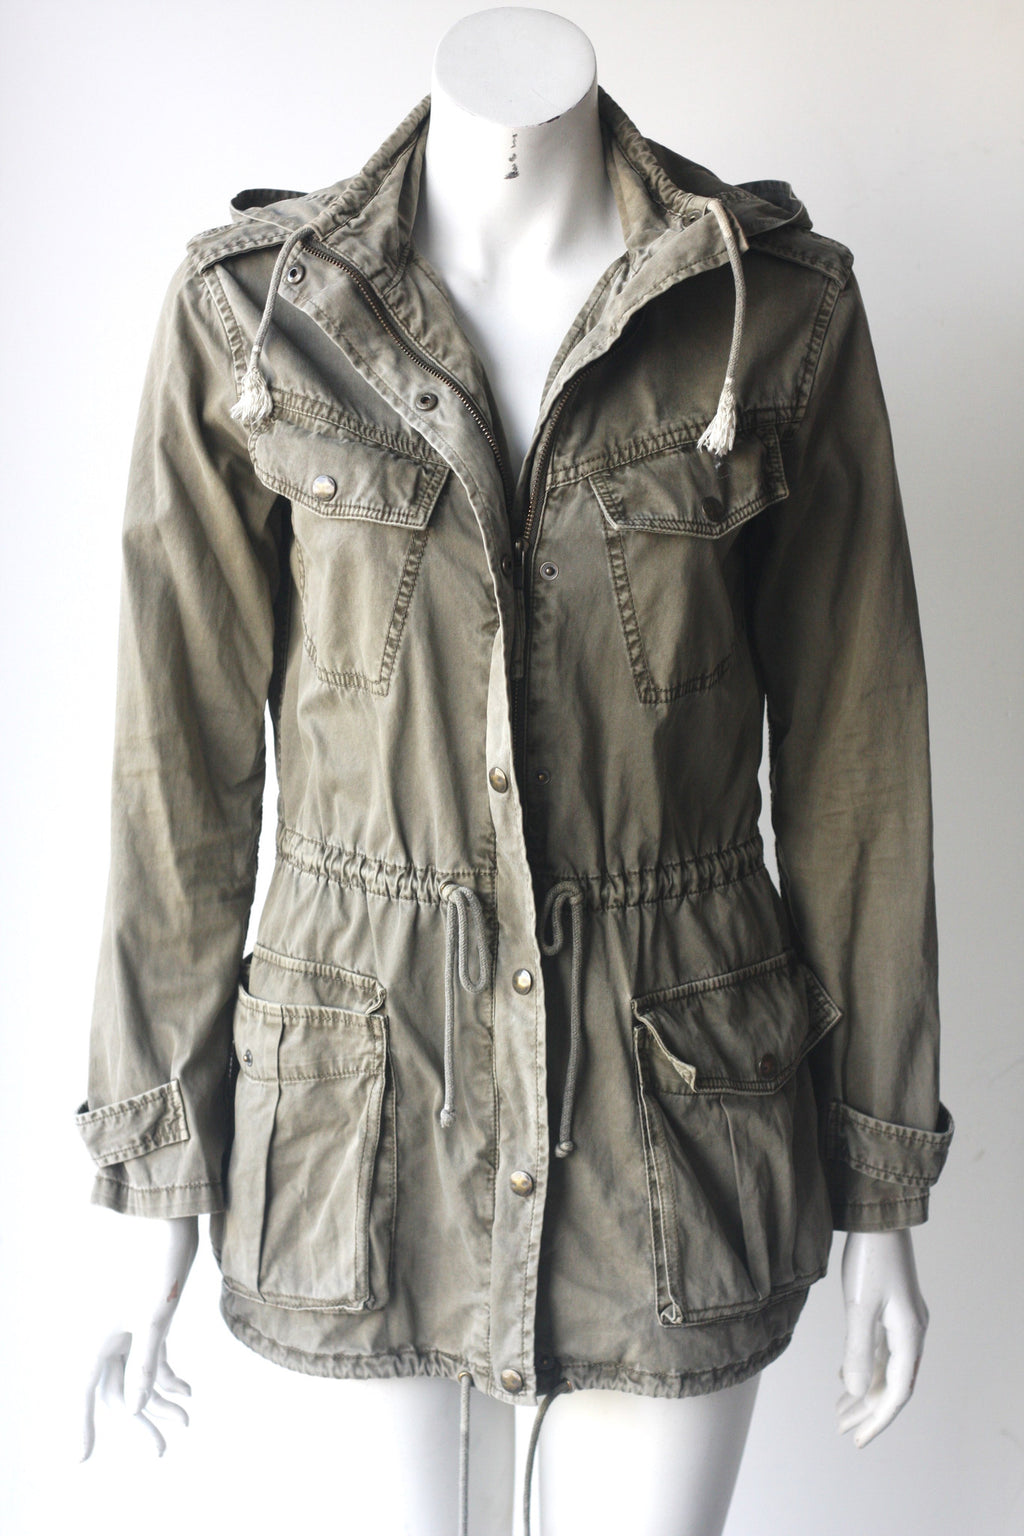 Talula Green Trooper Hooded Cargo Jacket - Joyce's Closet  - 1